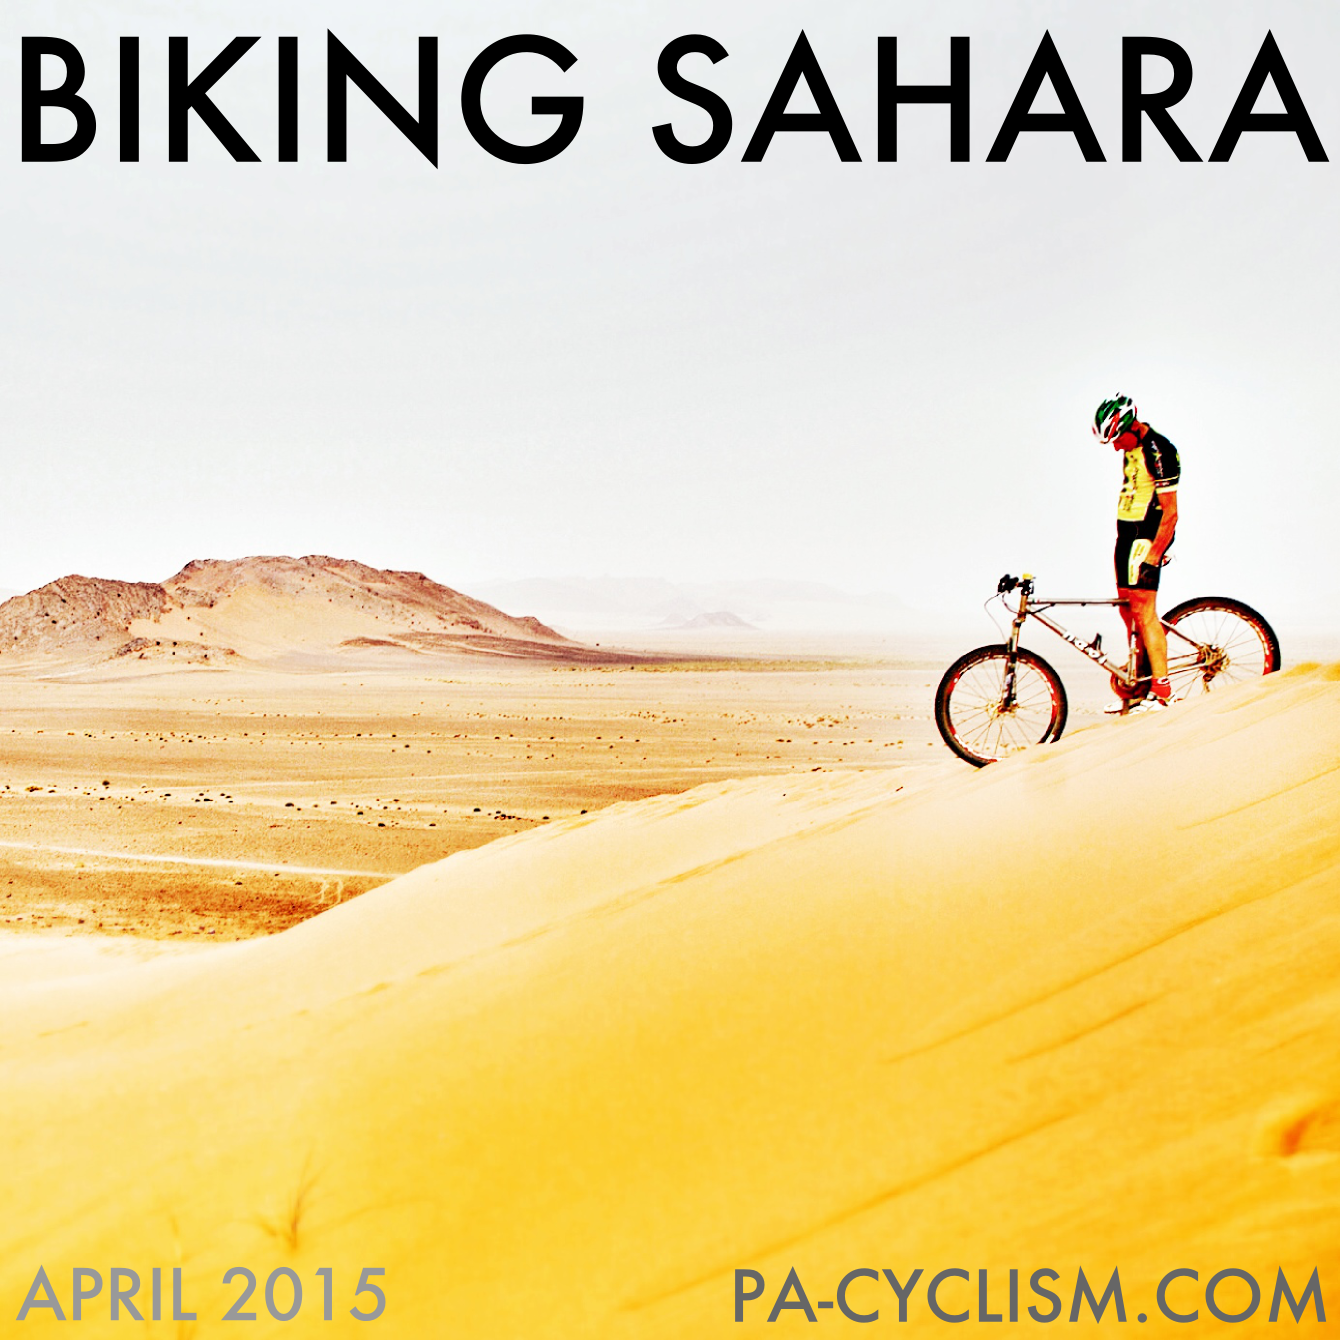 Our bike tour on the Sahara Desert